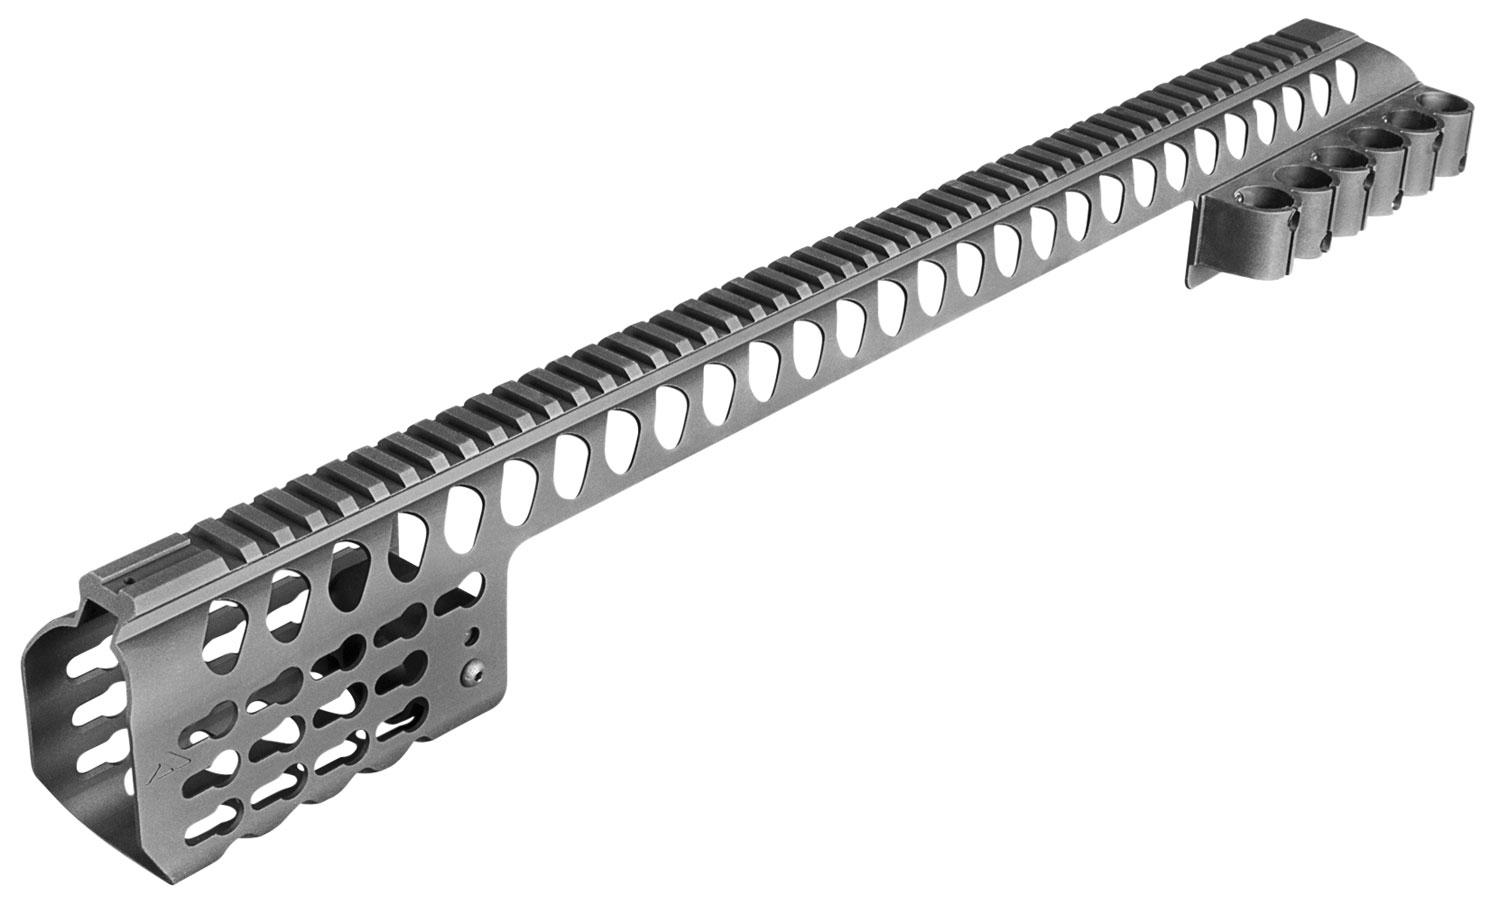 Aim Sports Mtksg500 Mlok Rail Mossberg 500 6061- T6 Aluminum Black 24.2